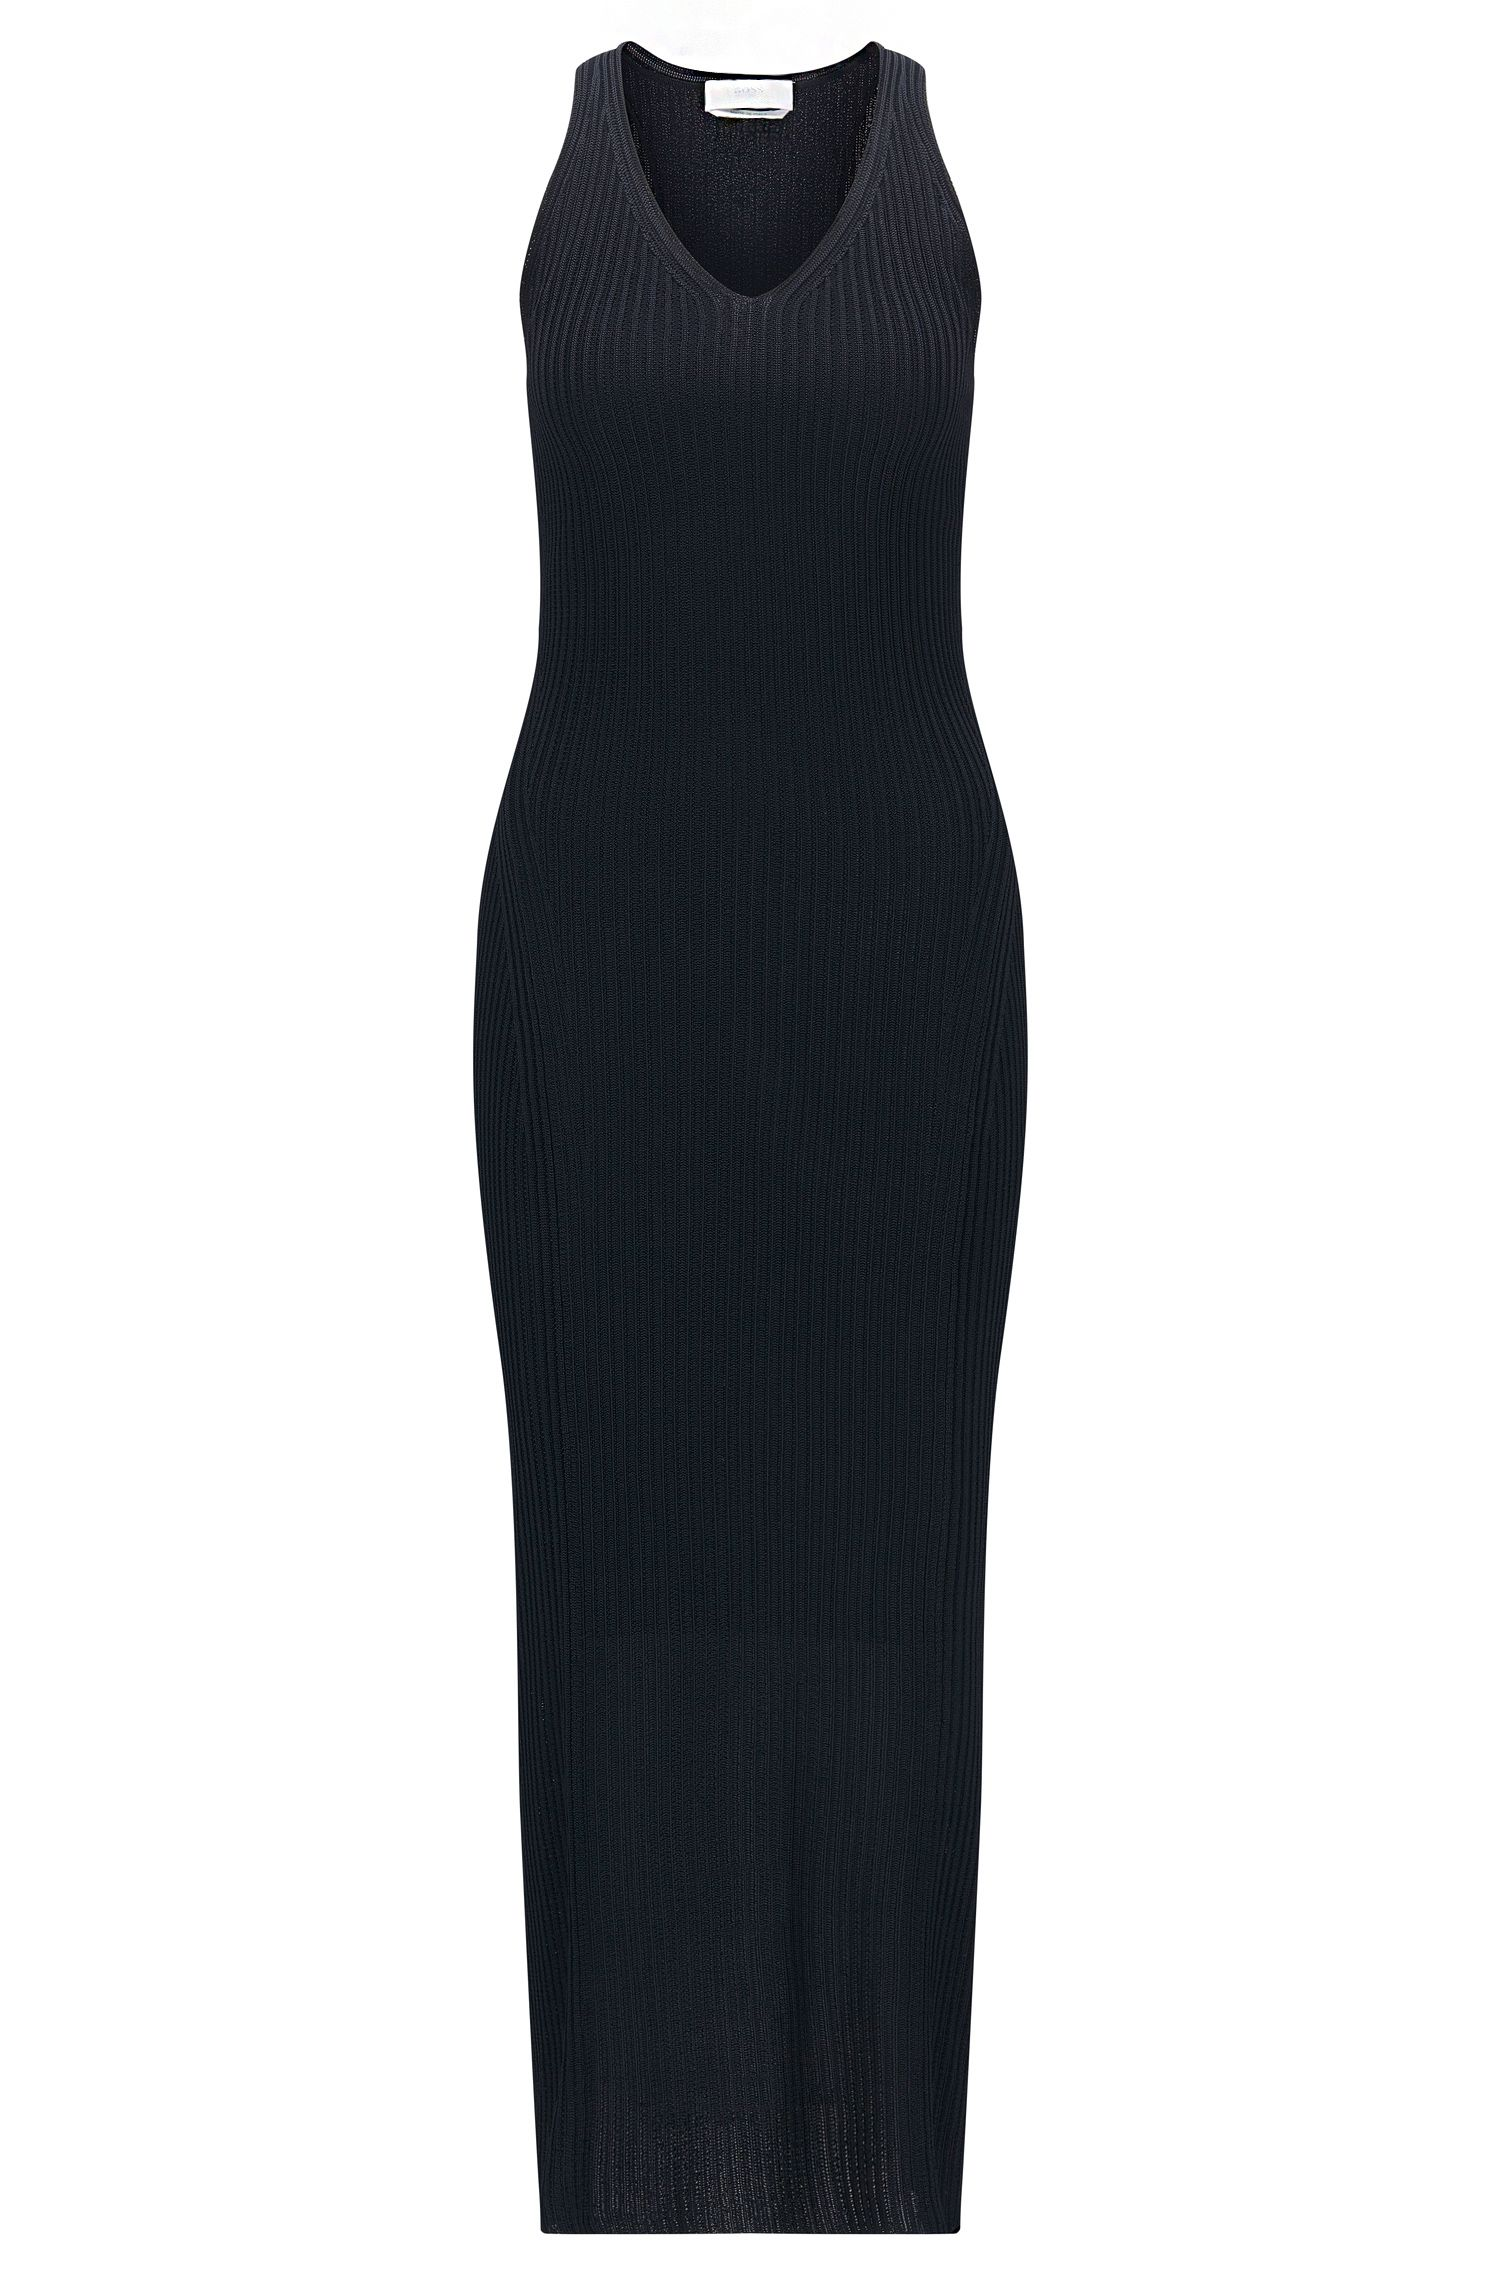 'FS_Firuza' | Ribbed Knit Sheath Dress